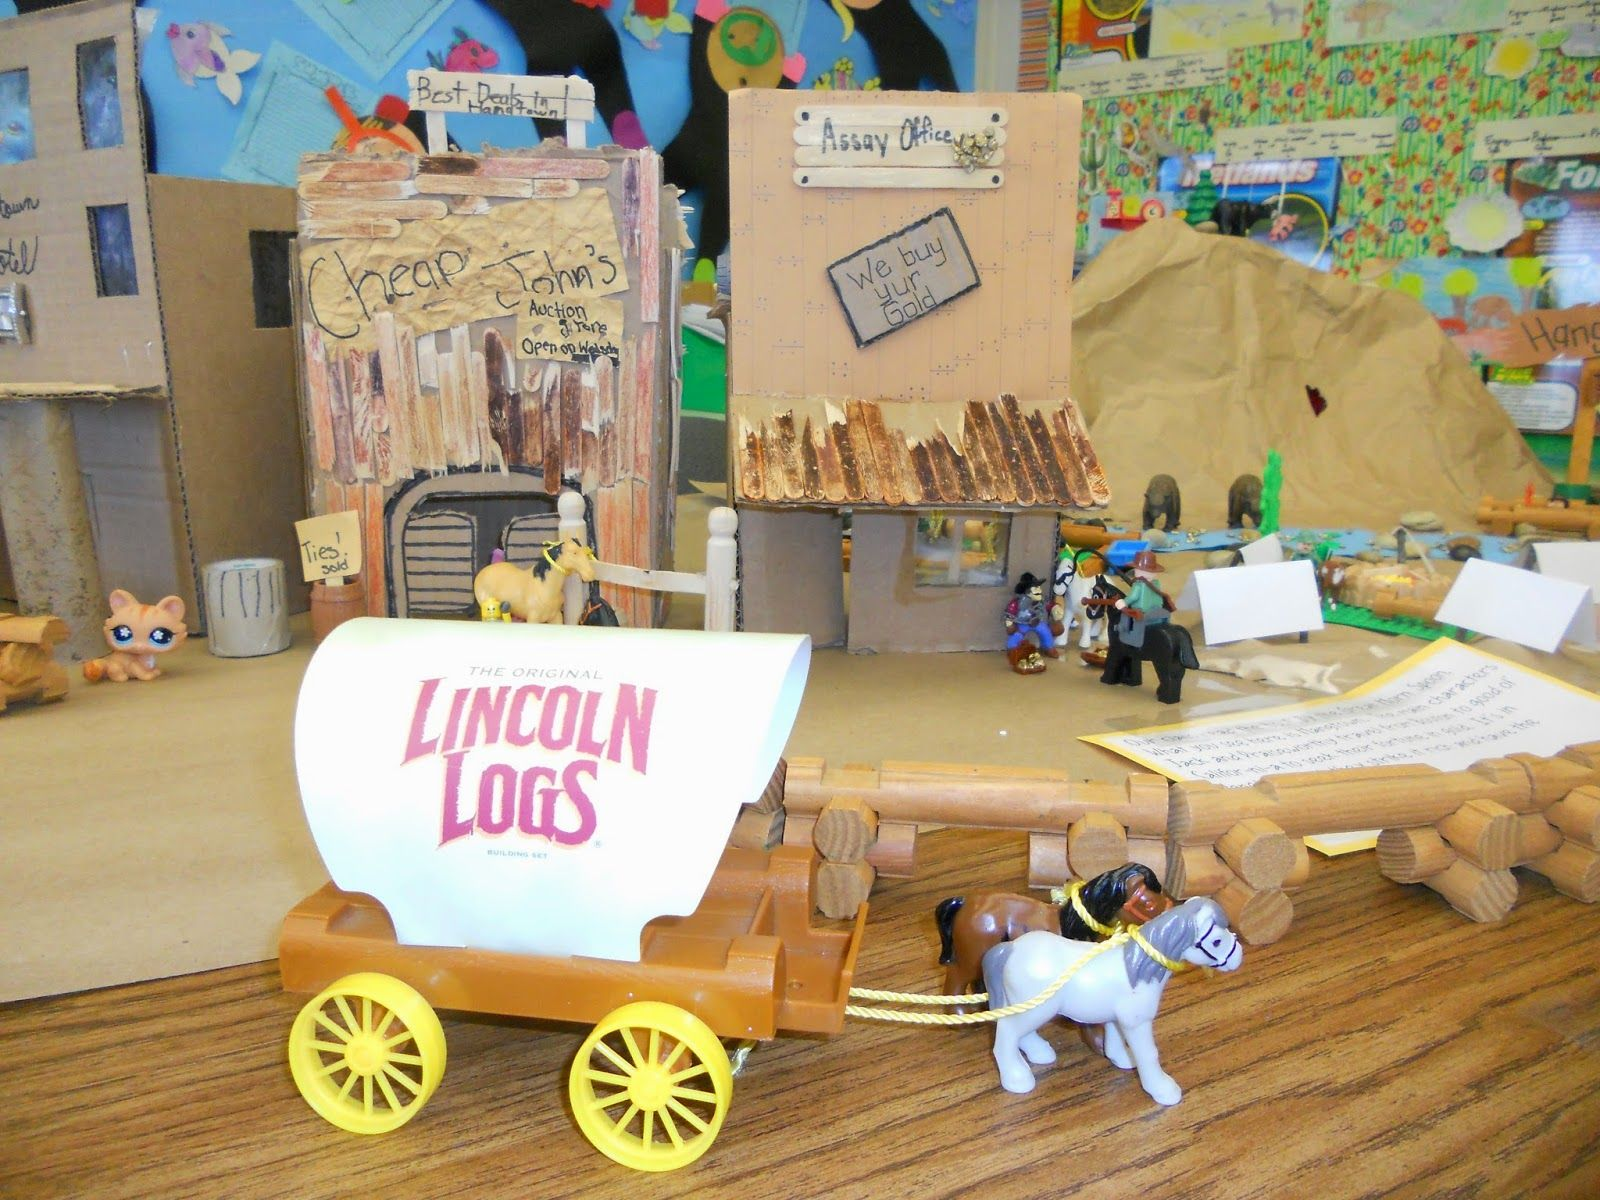 worksheet By The Great Horn Spoon Worksheets by the great horn spoon hangtown california gold rush town diorama